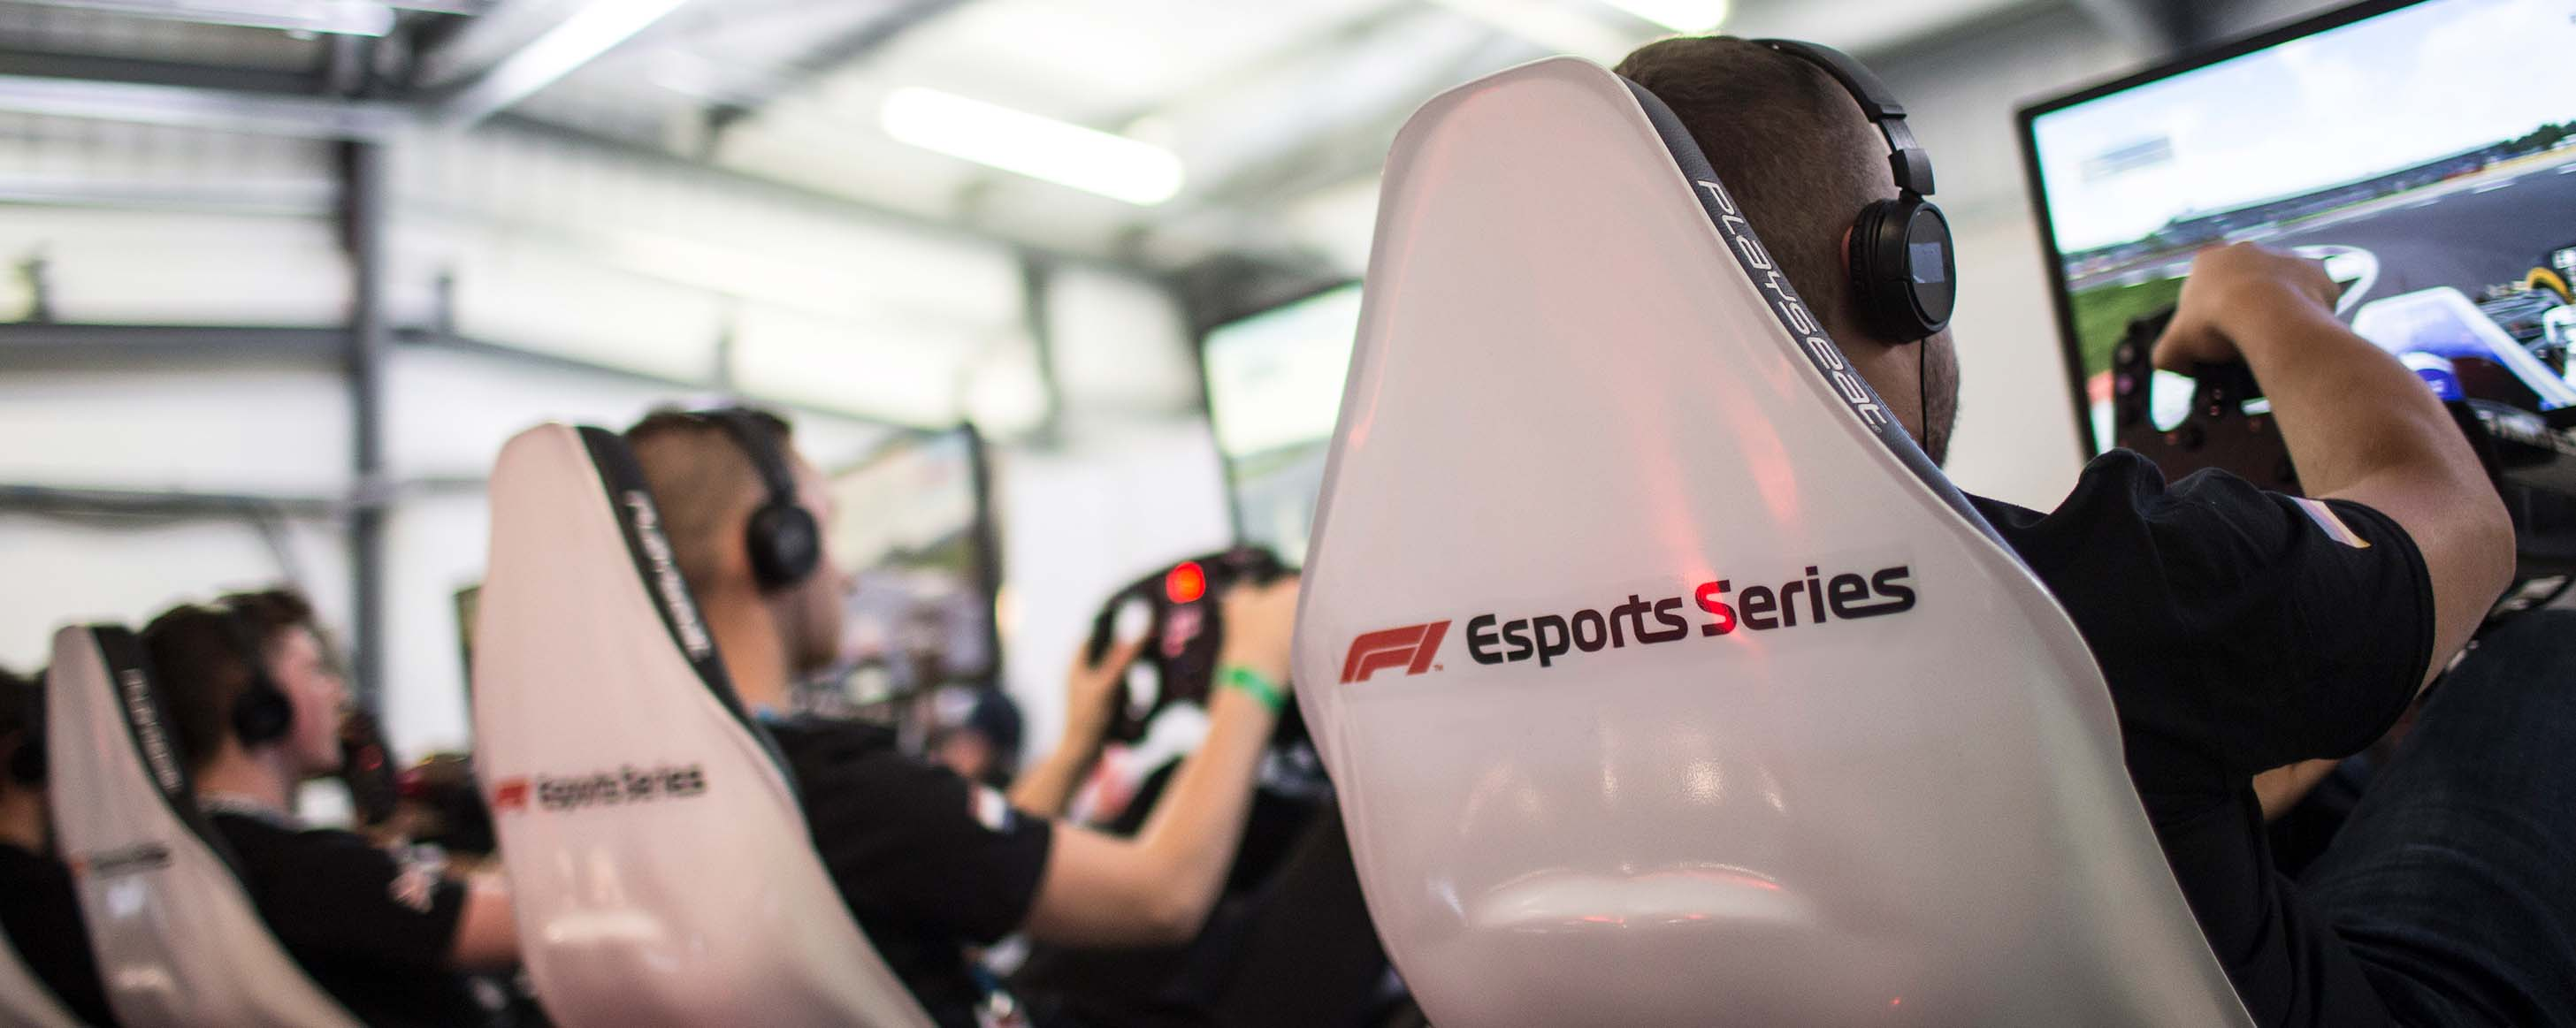 Now Tv F1 Pass Formula One Shares Its Esports Roadmap Ginx Esports Tv